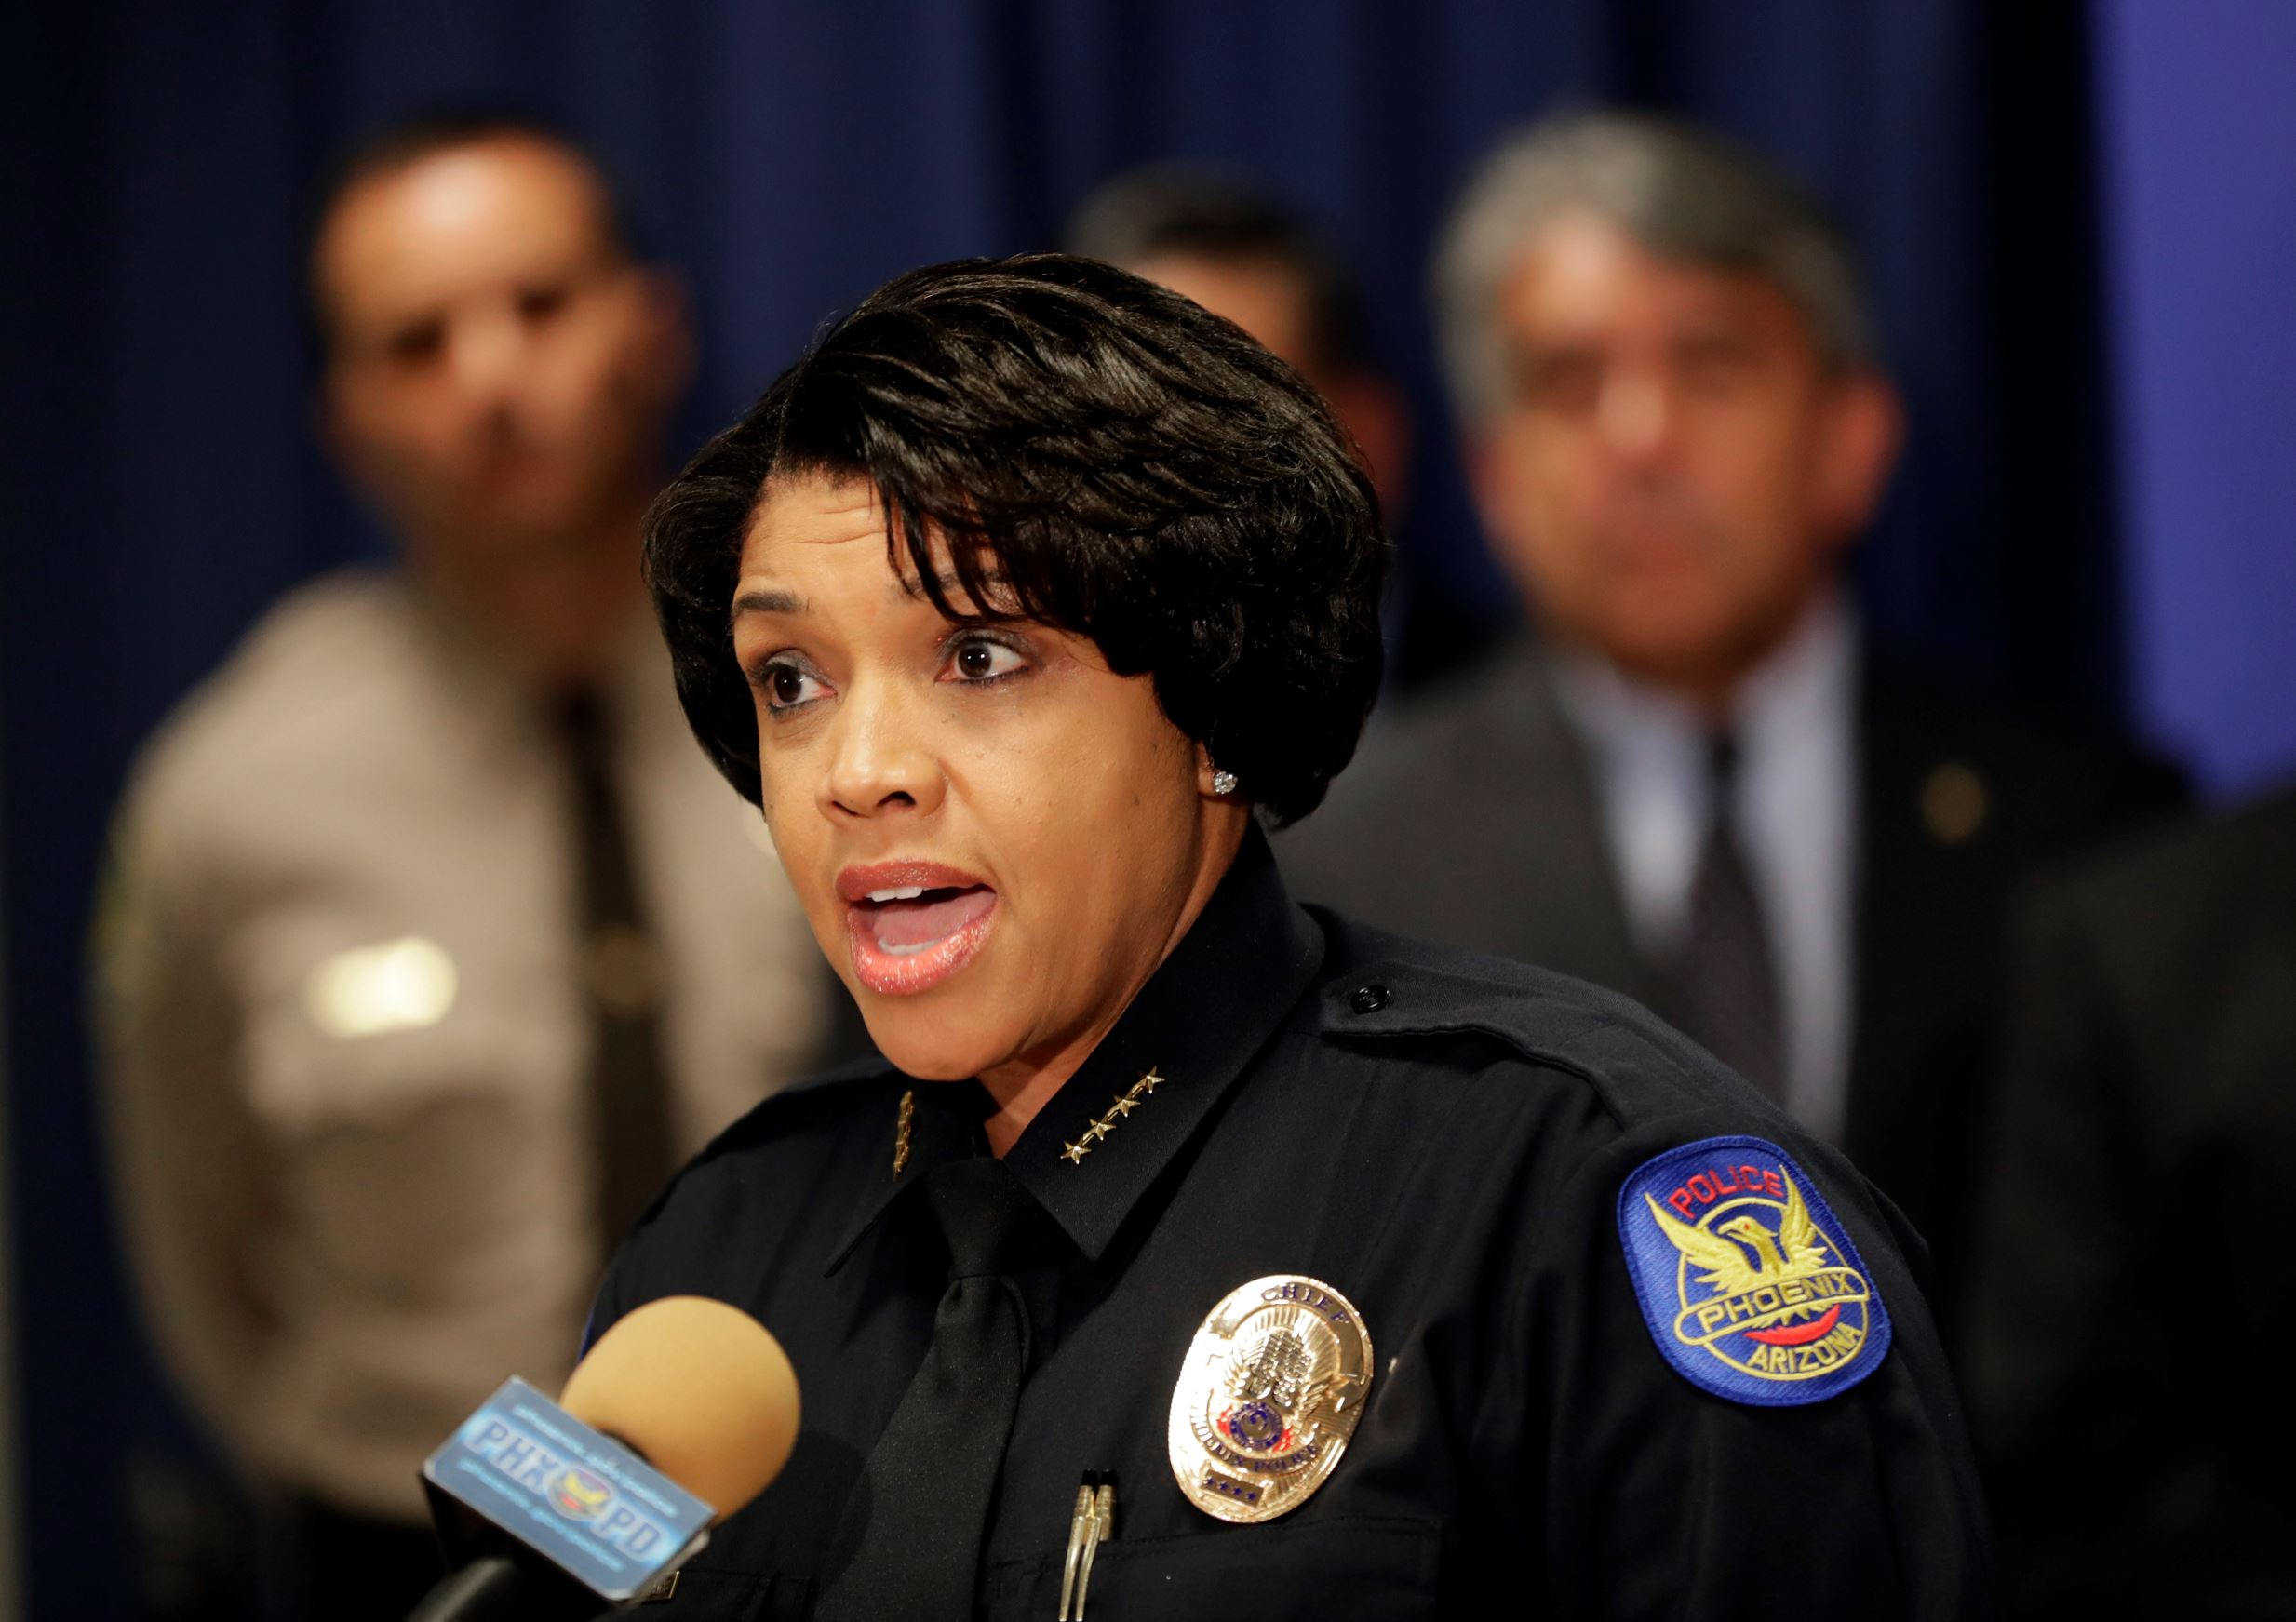 Phoenix Police Chief Jeri L. Williams announces, Monday, May 8, 2017, in Phoenix, the arrest of 23-year-old Aaron Saucedo in connection with the serial street shootings that terrorized the Phoenix area over four months in 2016.